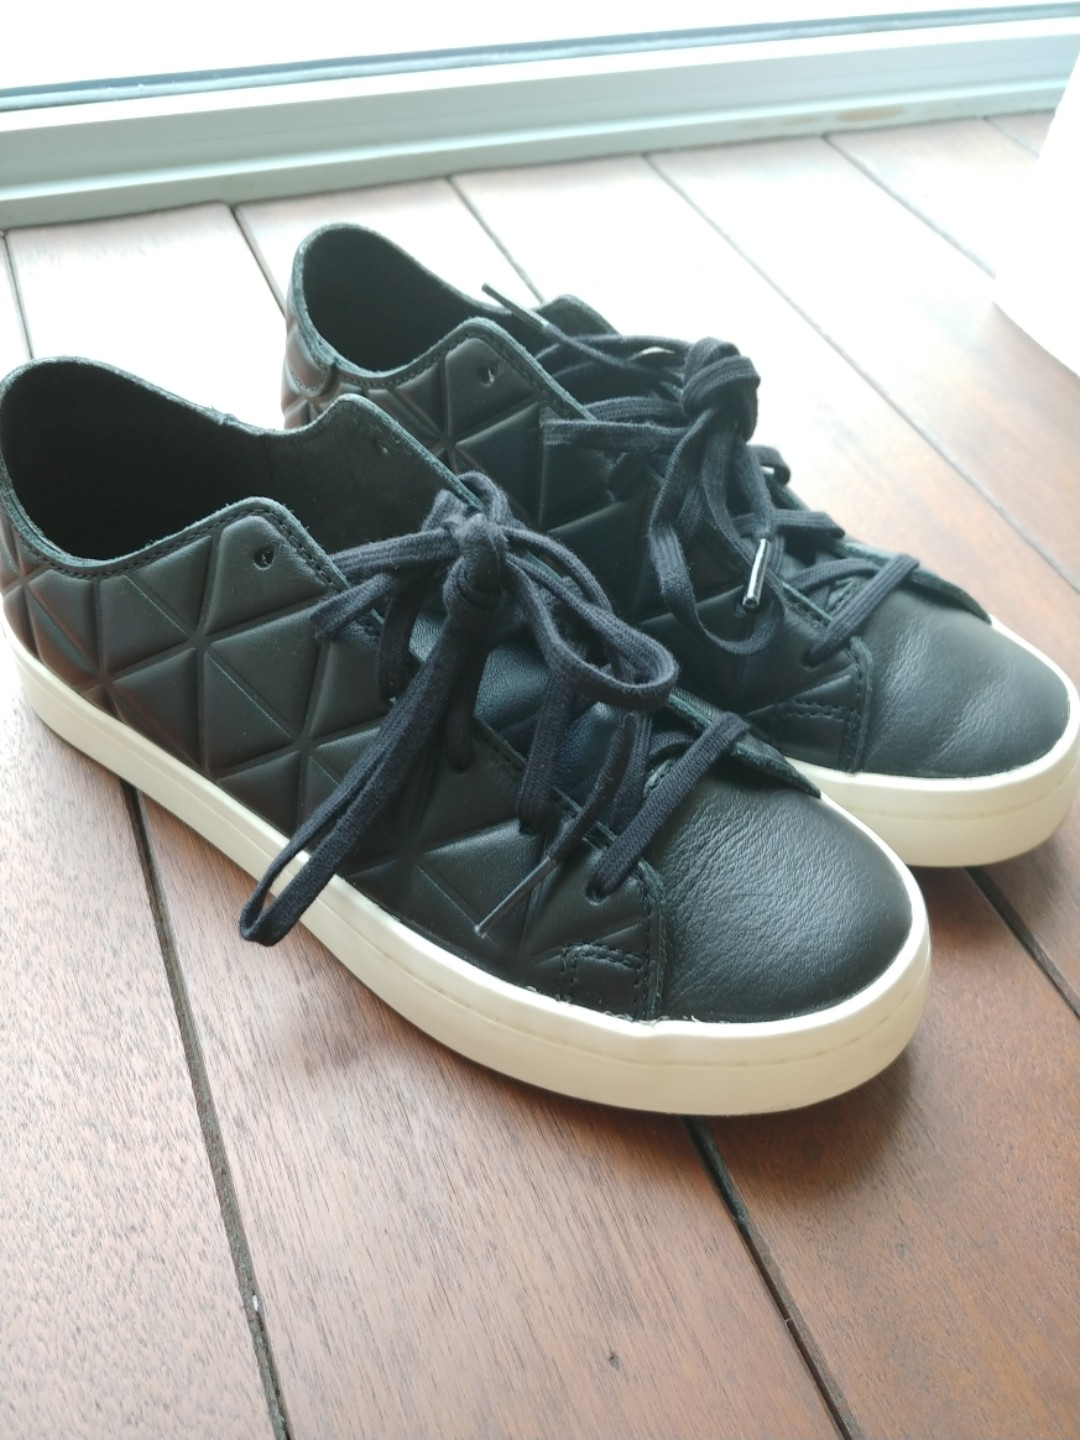 finest selection 65fca 4ef51 Adidas Court Vantage Polygon in black, Womens Fashion, Shoes, Sneakers on  Carousell